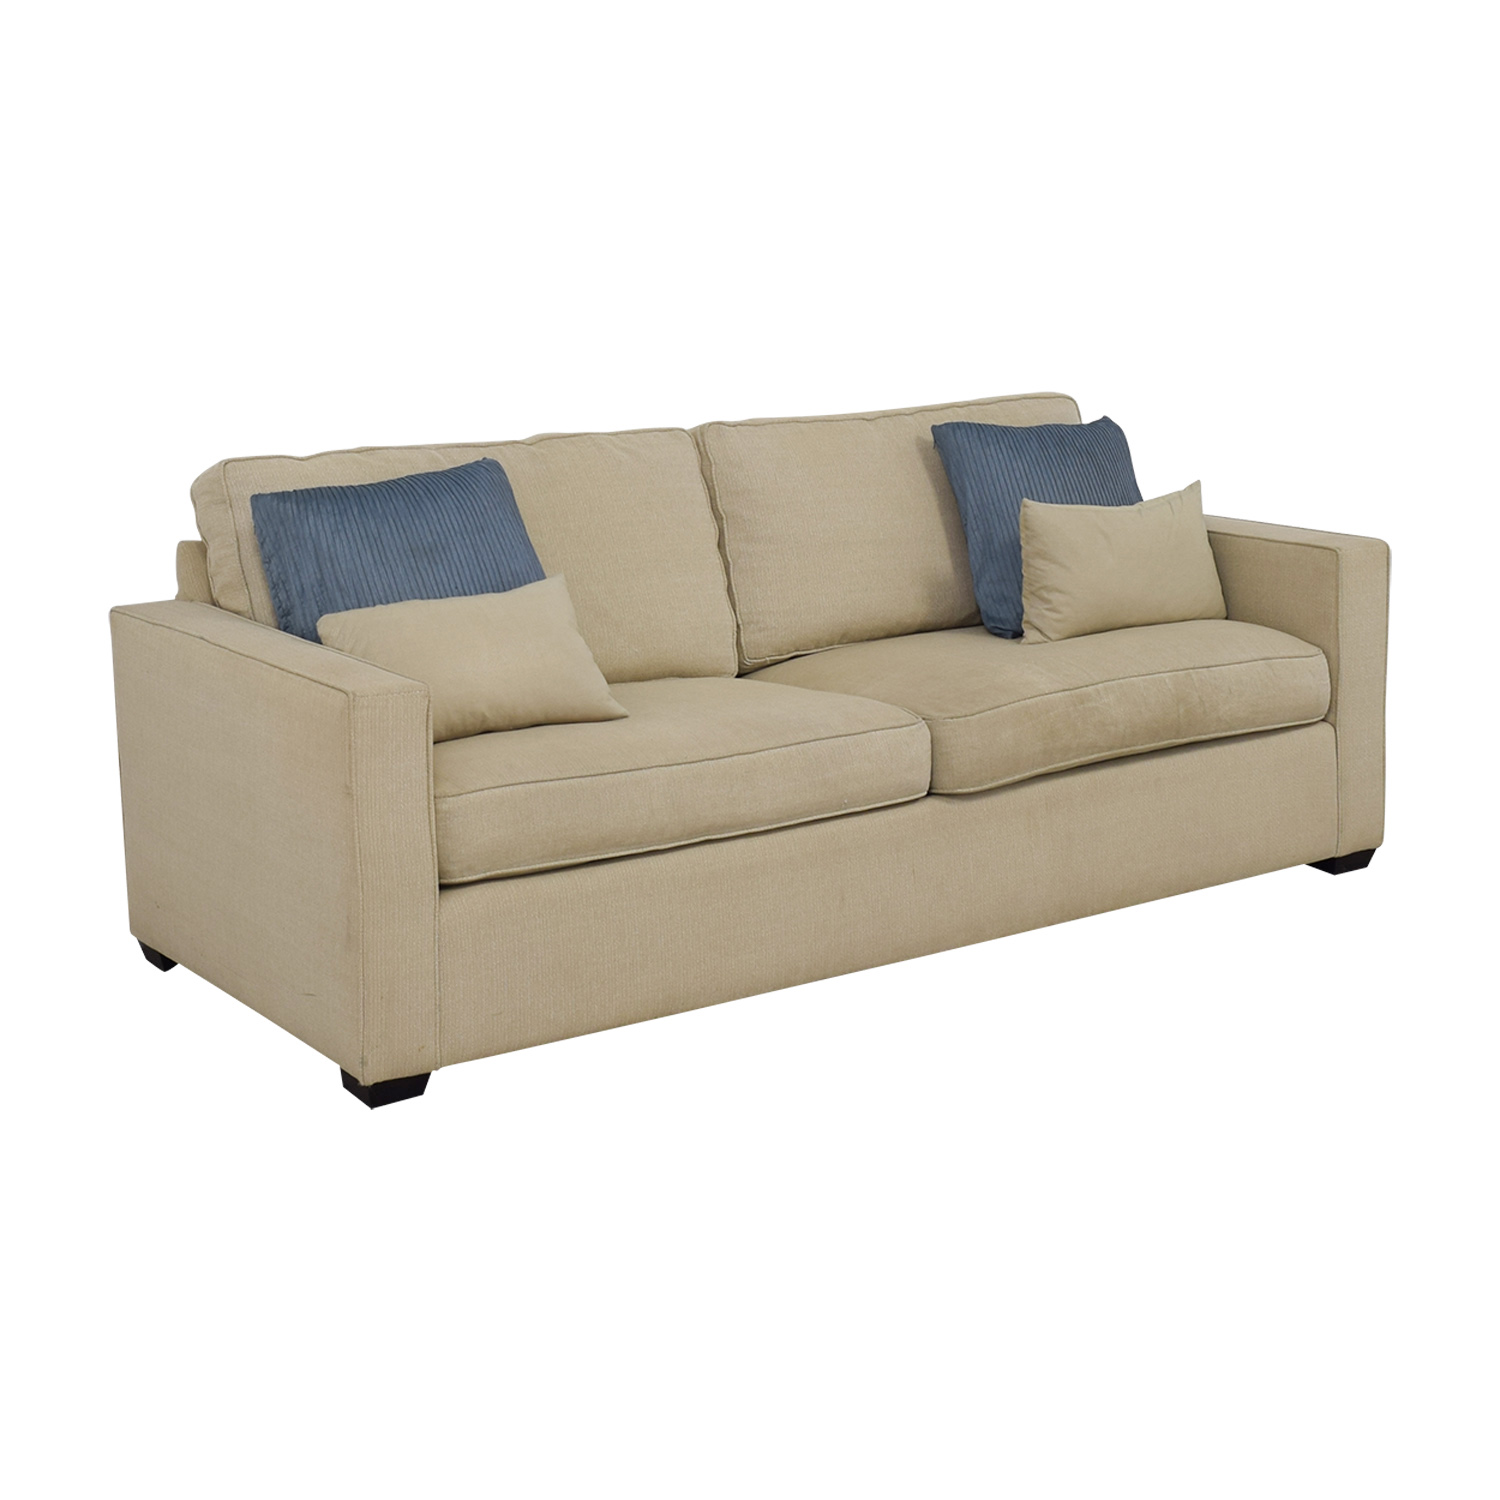 Swell 88 Off Room Board Room Board Dublin Beige Two Cushion Sofa Sofas Alphanode Cool Chair Designs And Ideas Alphanodeonline